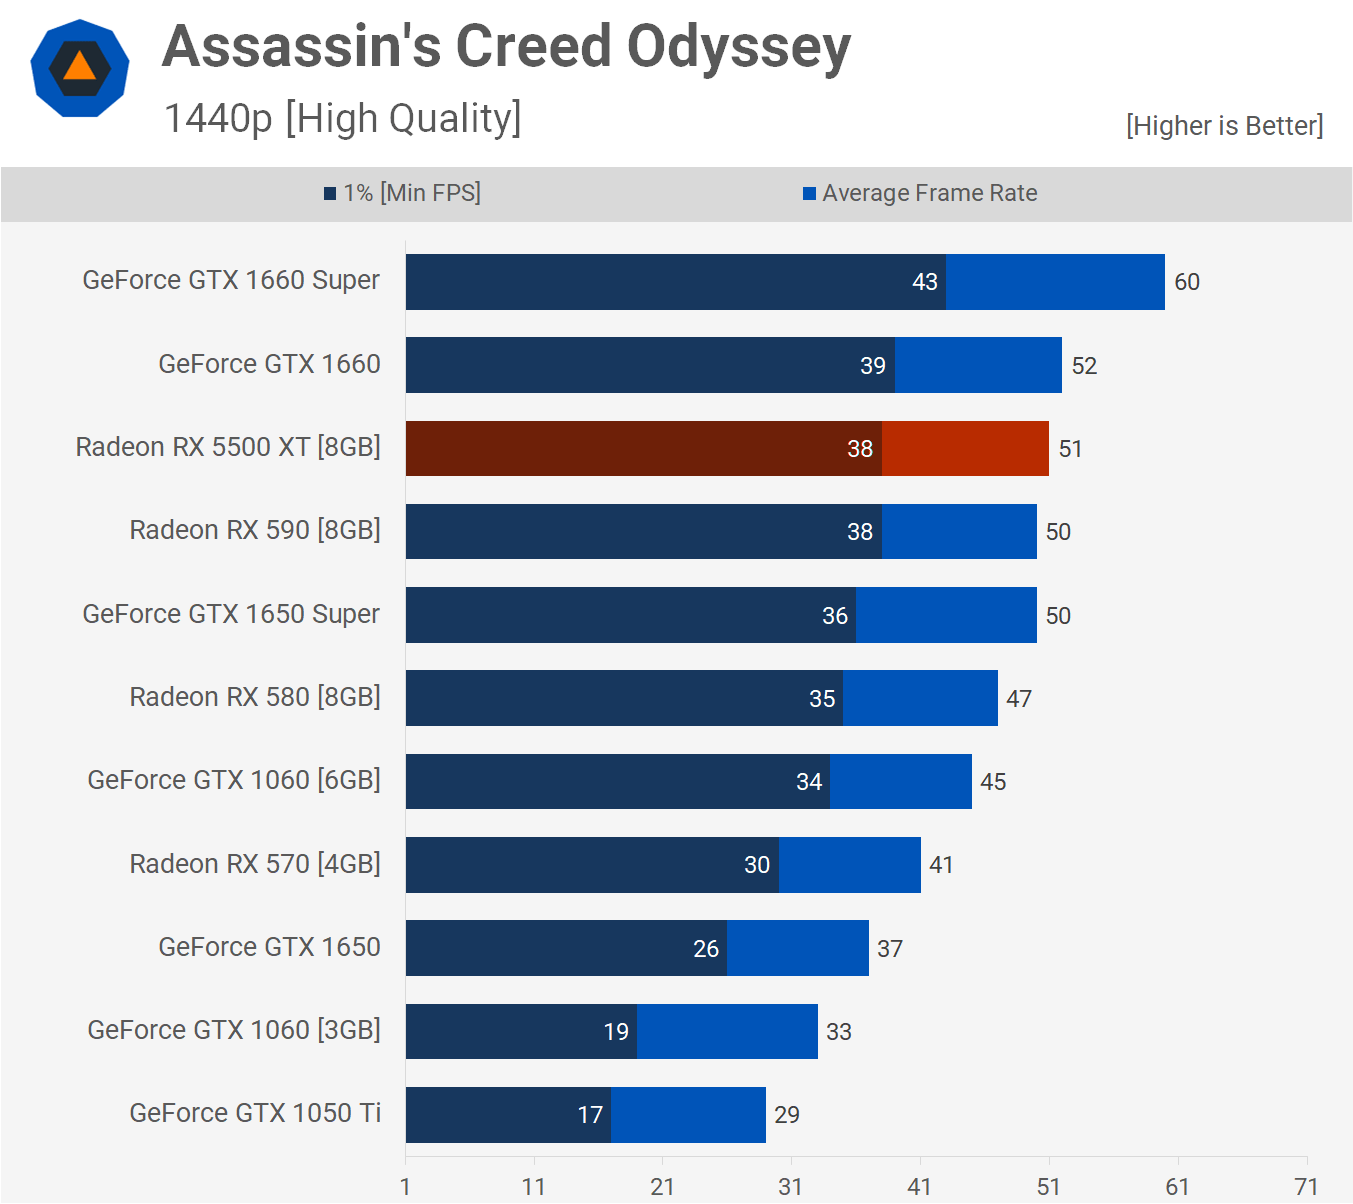 Assassin's Creed Odyssey 1440p